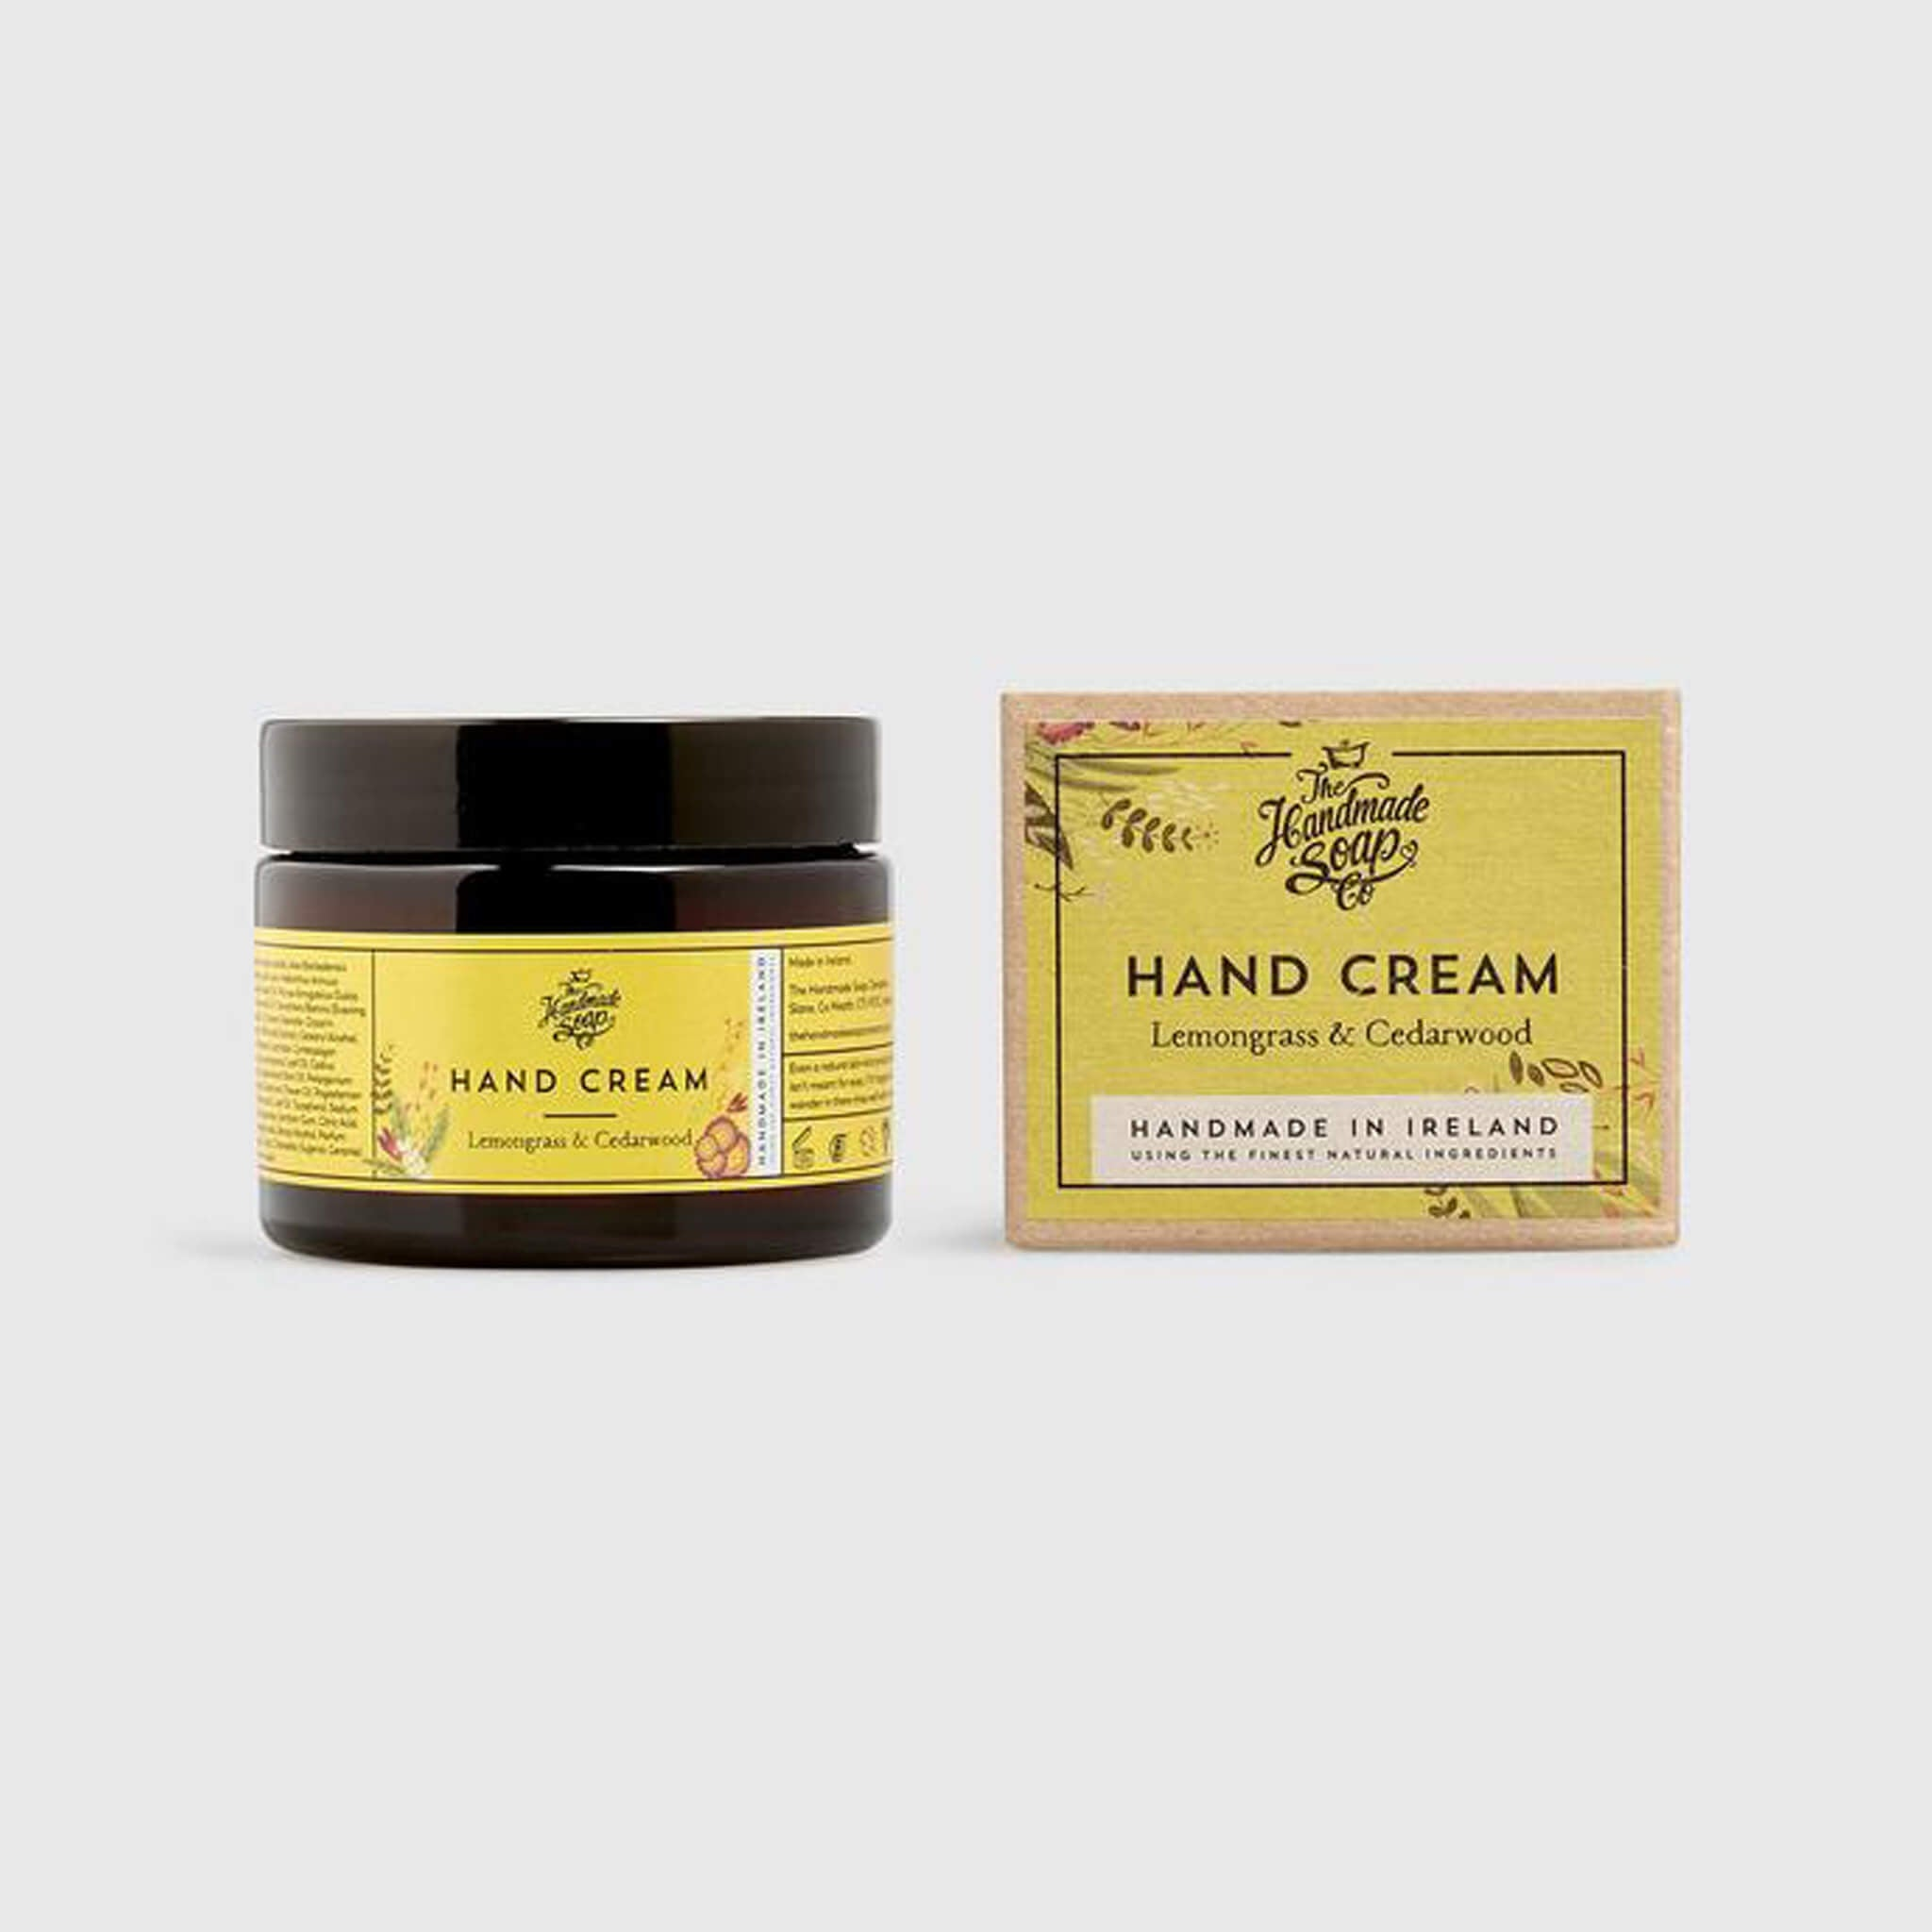 Lemongrass & Cedar Wood Hand Cream - Unik by Nature